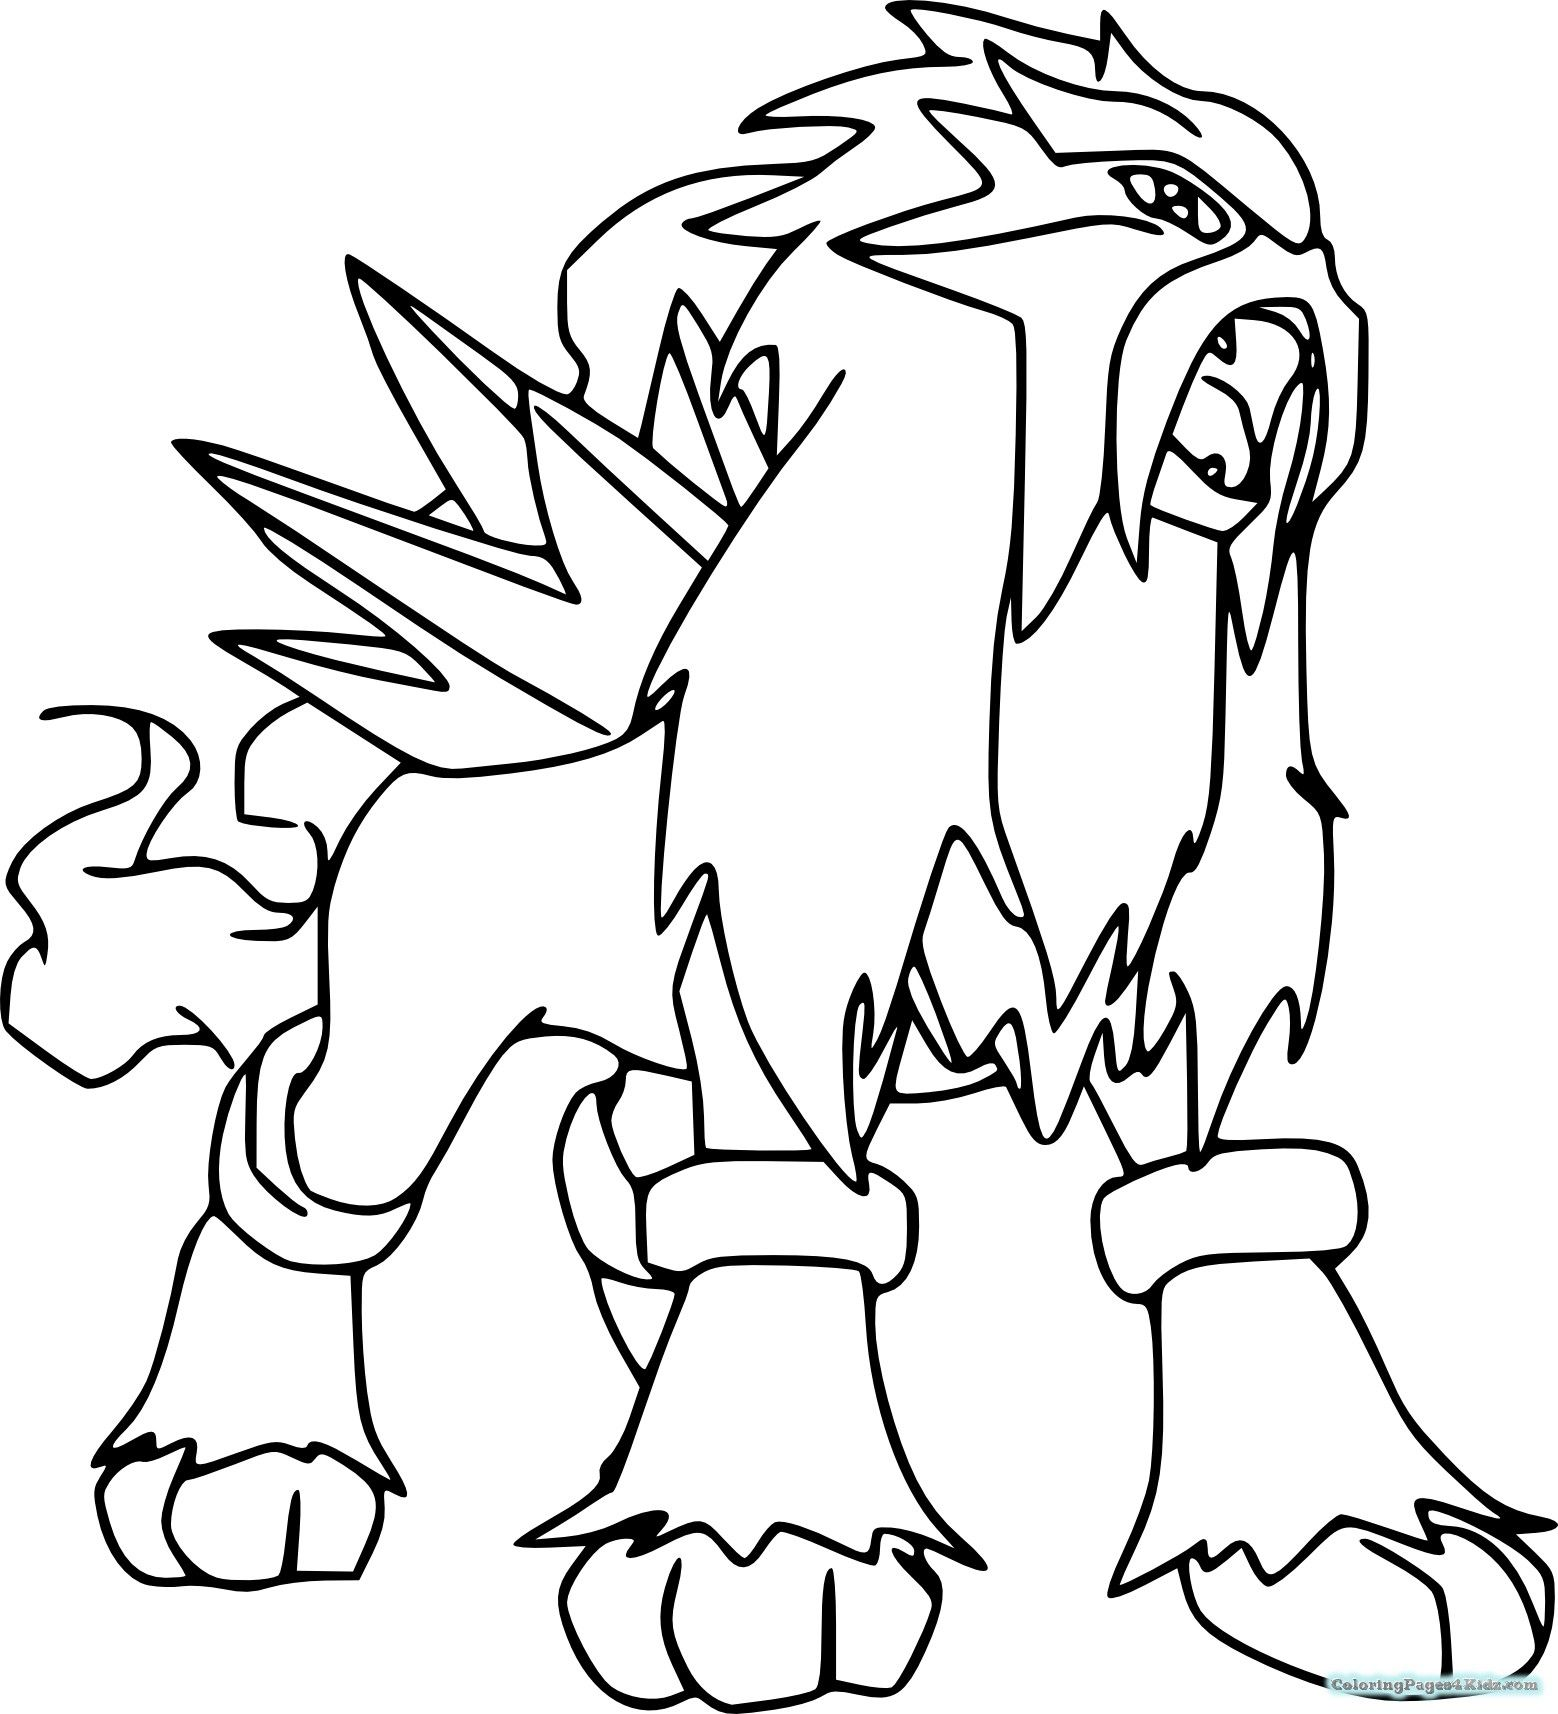 Legendary Pokemon Coloring Pages Free Http Www Wallpaperartdesignhd Us Legendary Pokemon Colo Pokemon Coloring Pages Pokemon Coloring Pokemon Coloring Sheets